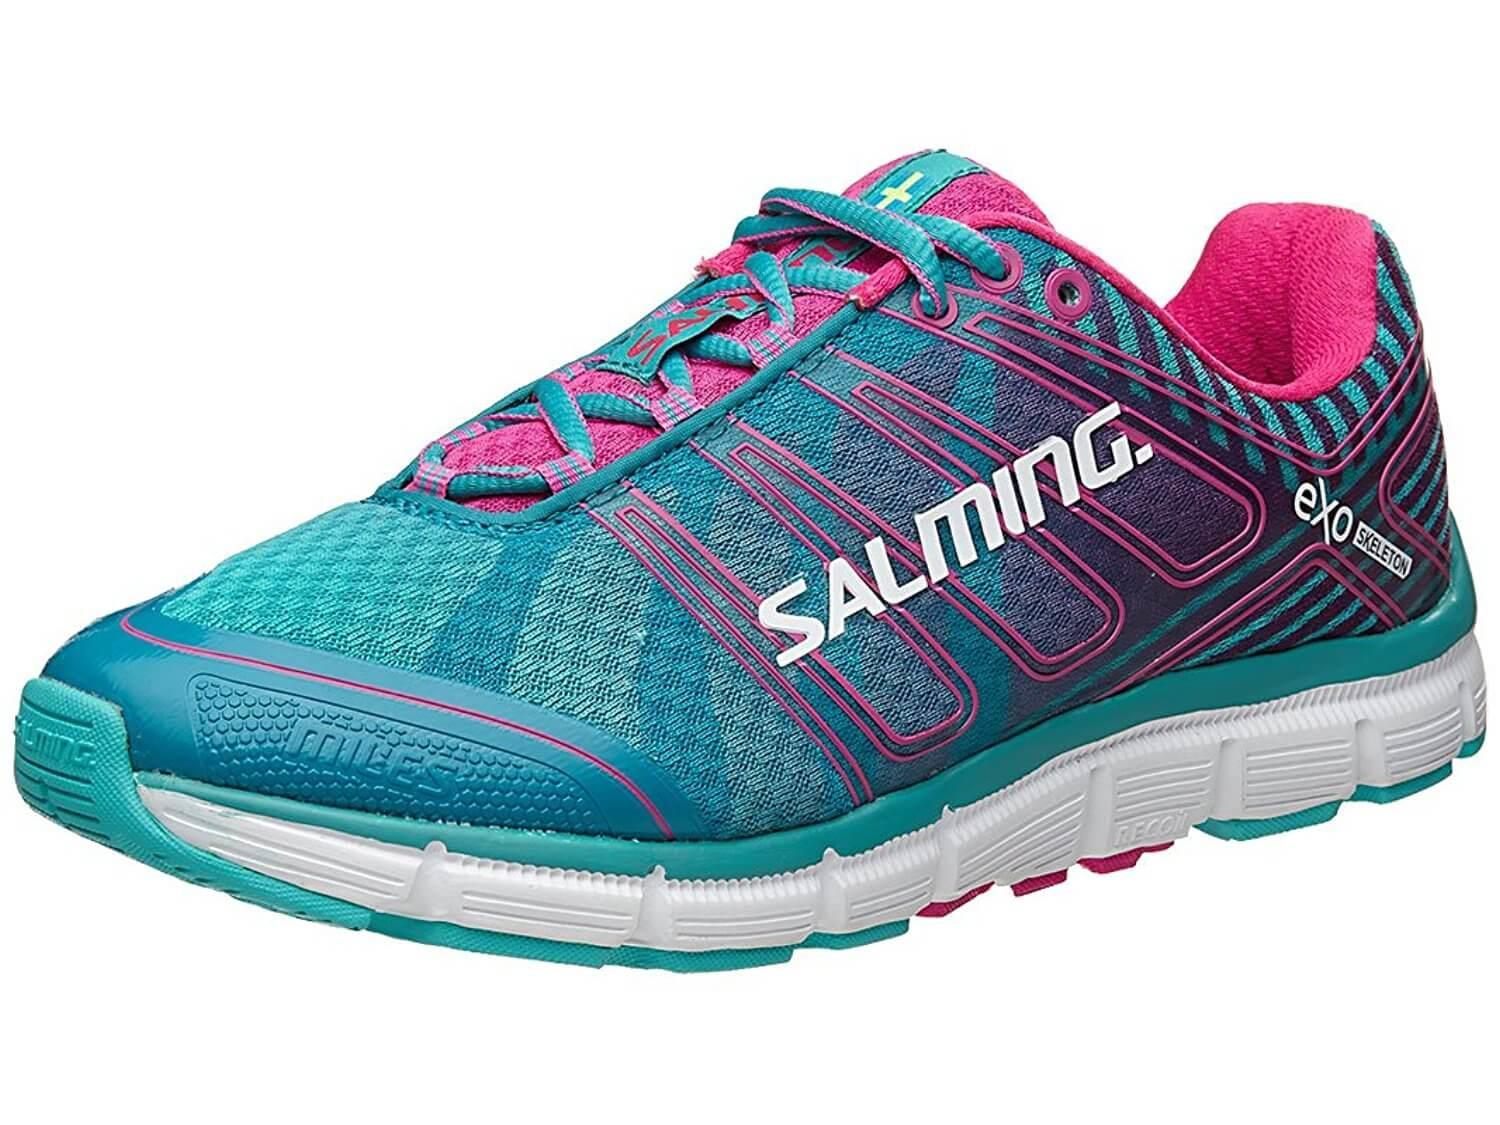 The Salming Miles comes in bright colors.